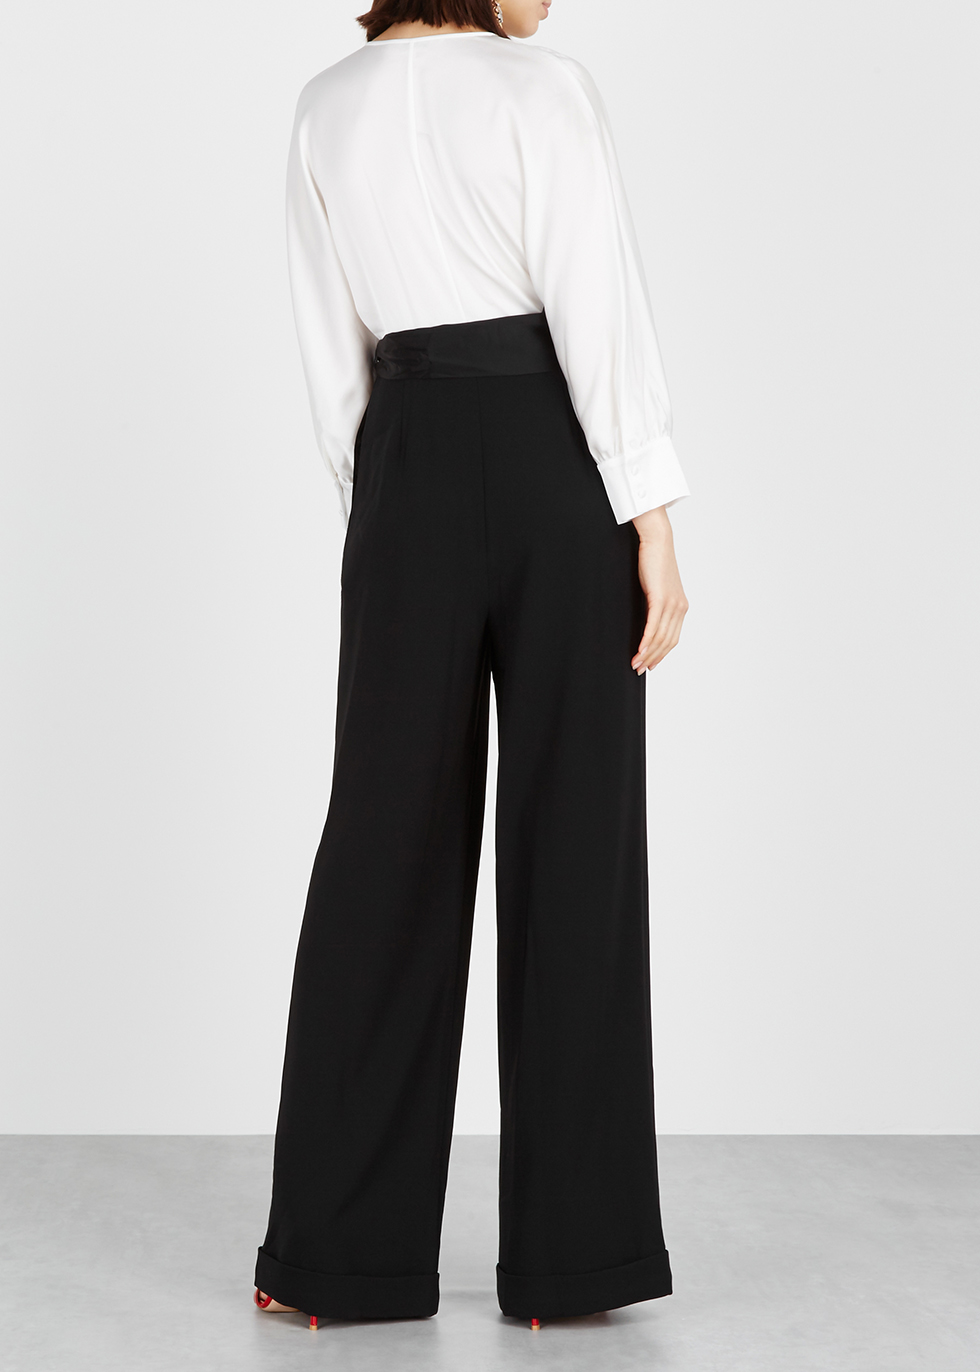 Crepe Jumpsuit Von Furstenberg Satin And Diane Marle Monochrome 8SP8Zw